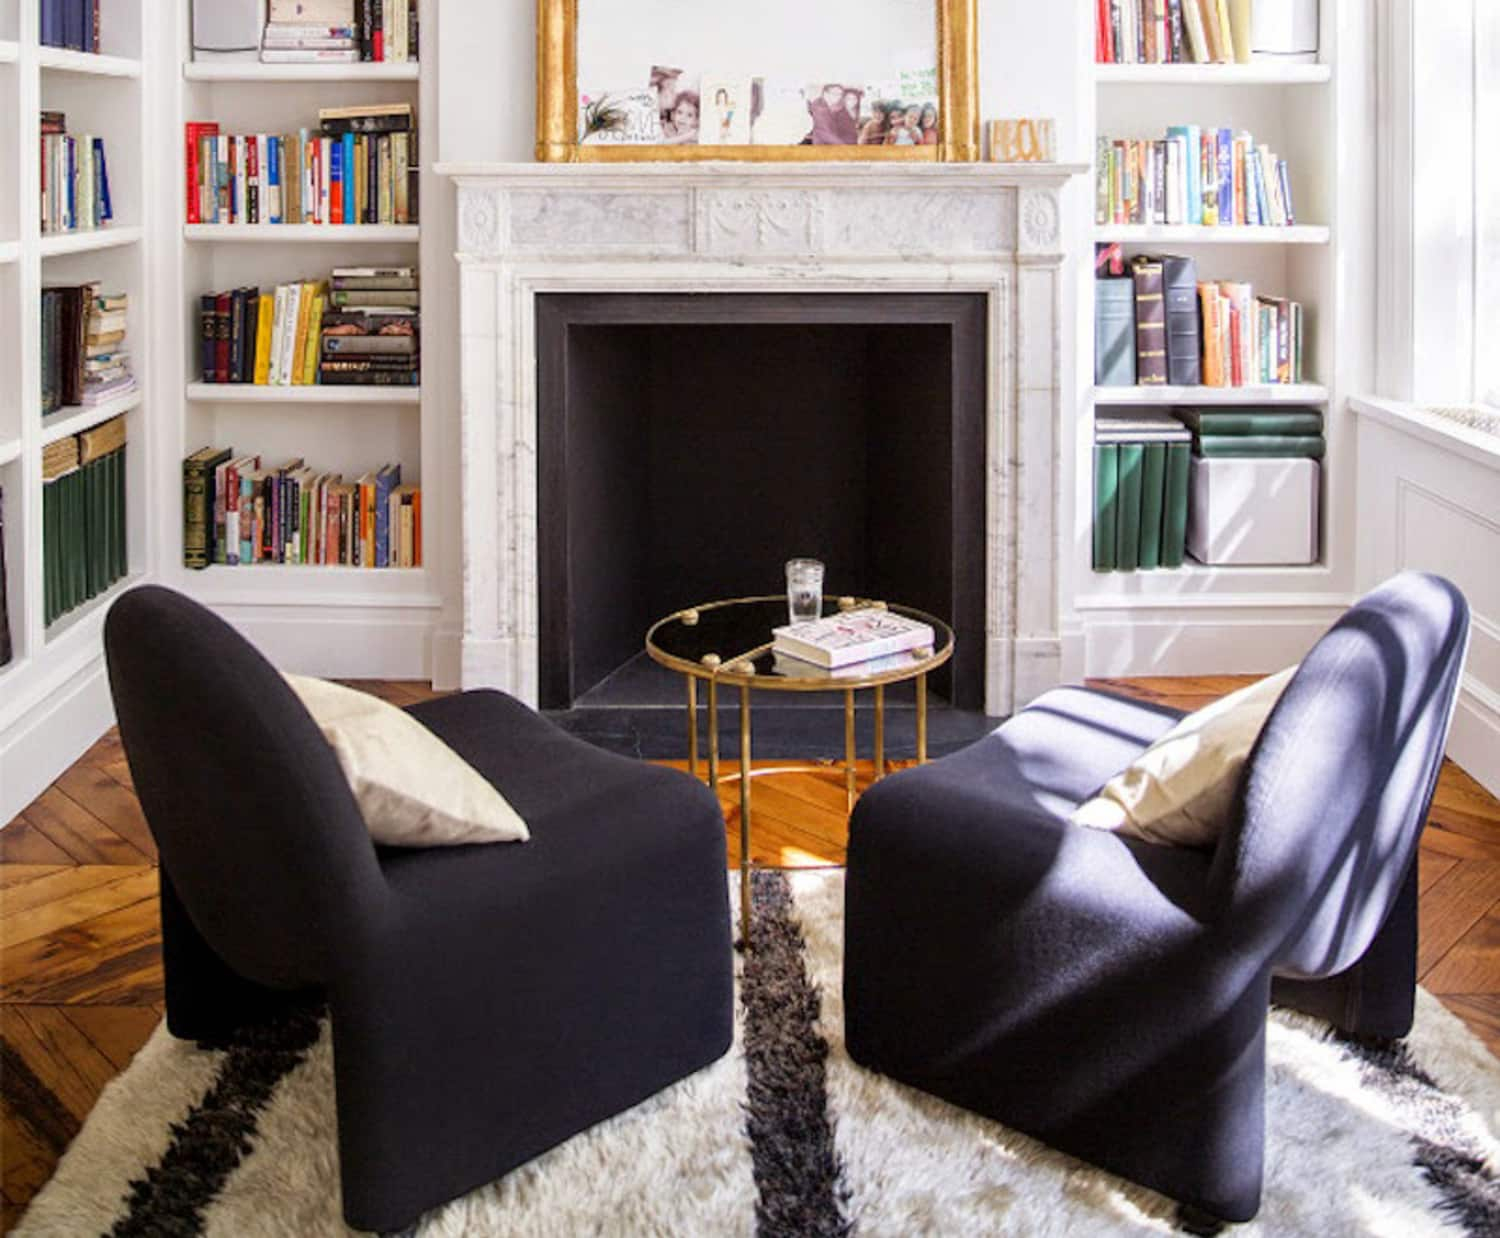 How To Set Up Your Living Room Without A Focus On The Tv intended for 12 Smart Tricks of How to Upgrade How To Set Up Living Room